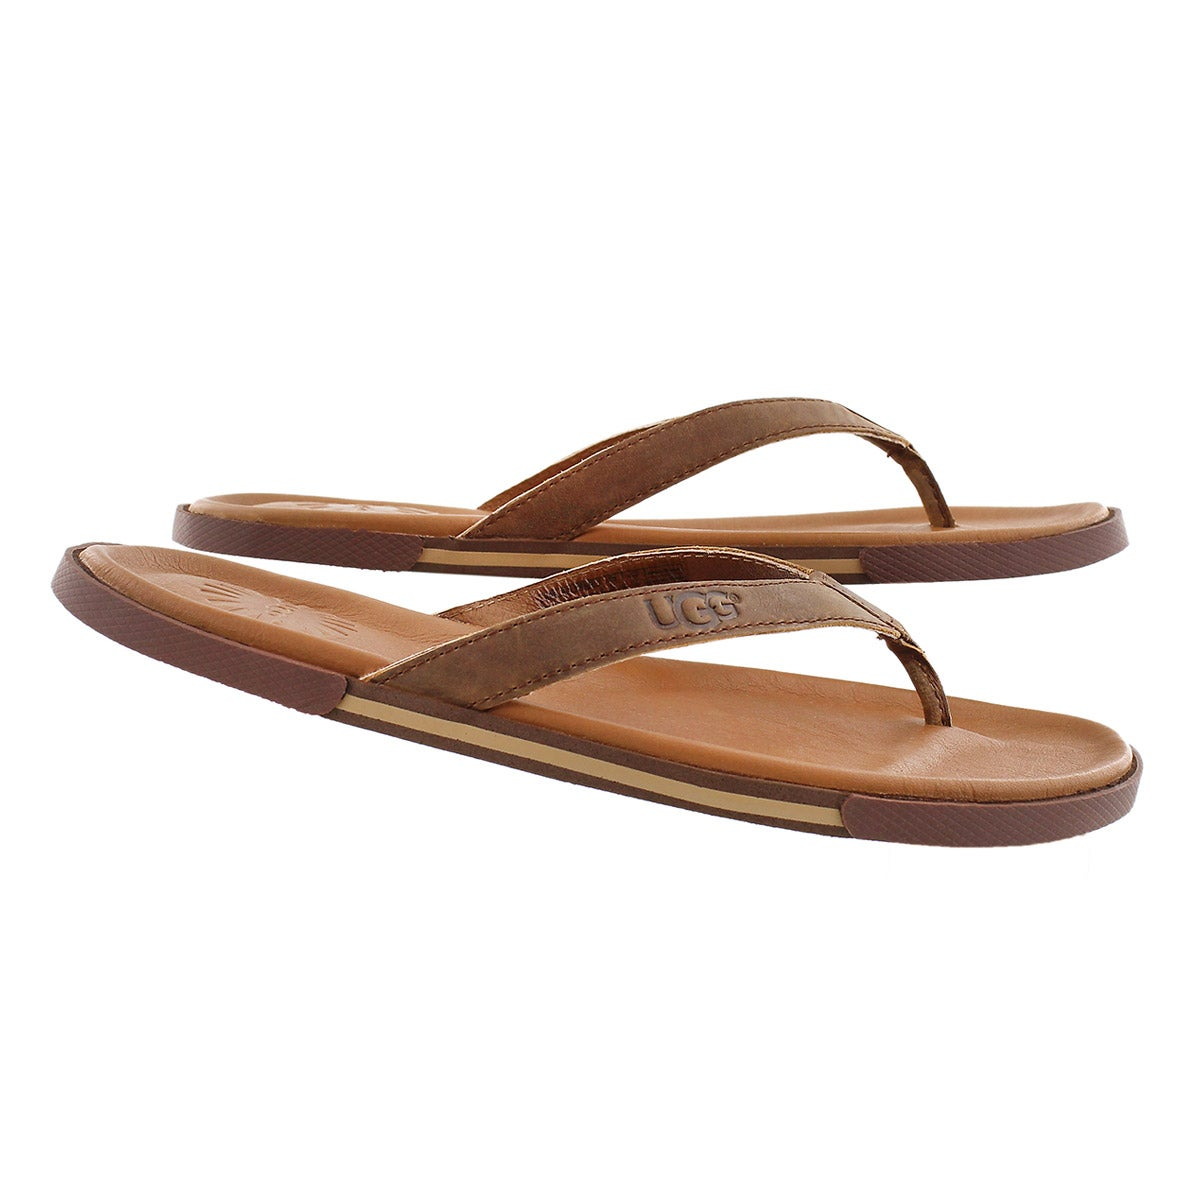 Mns Bennison II luggage leather sandal